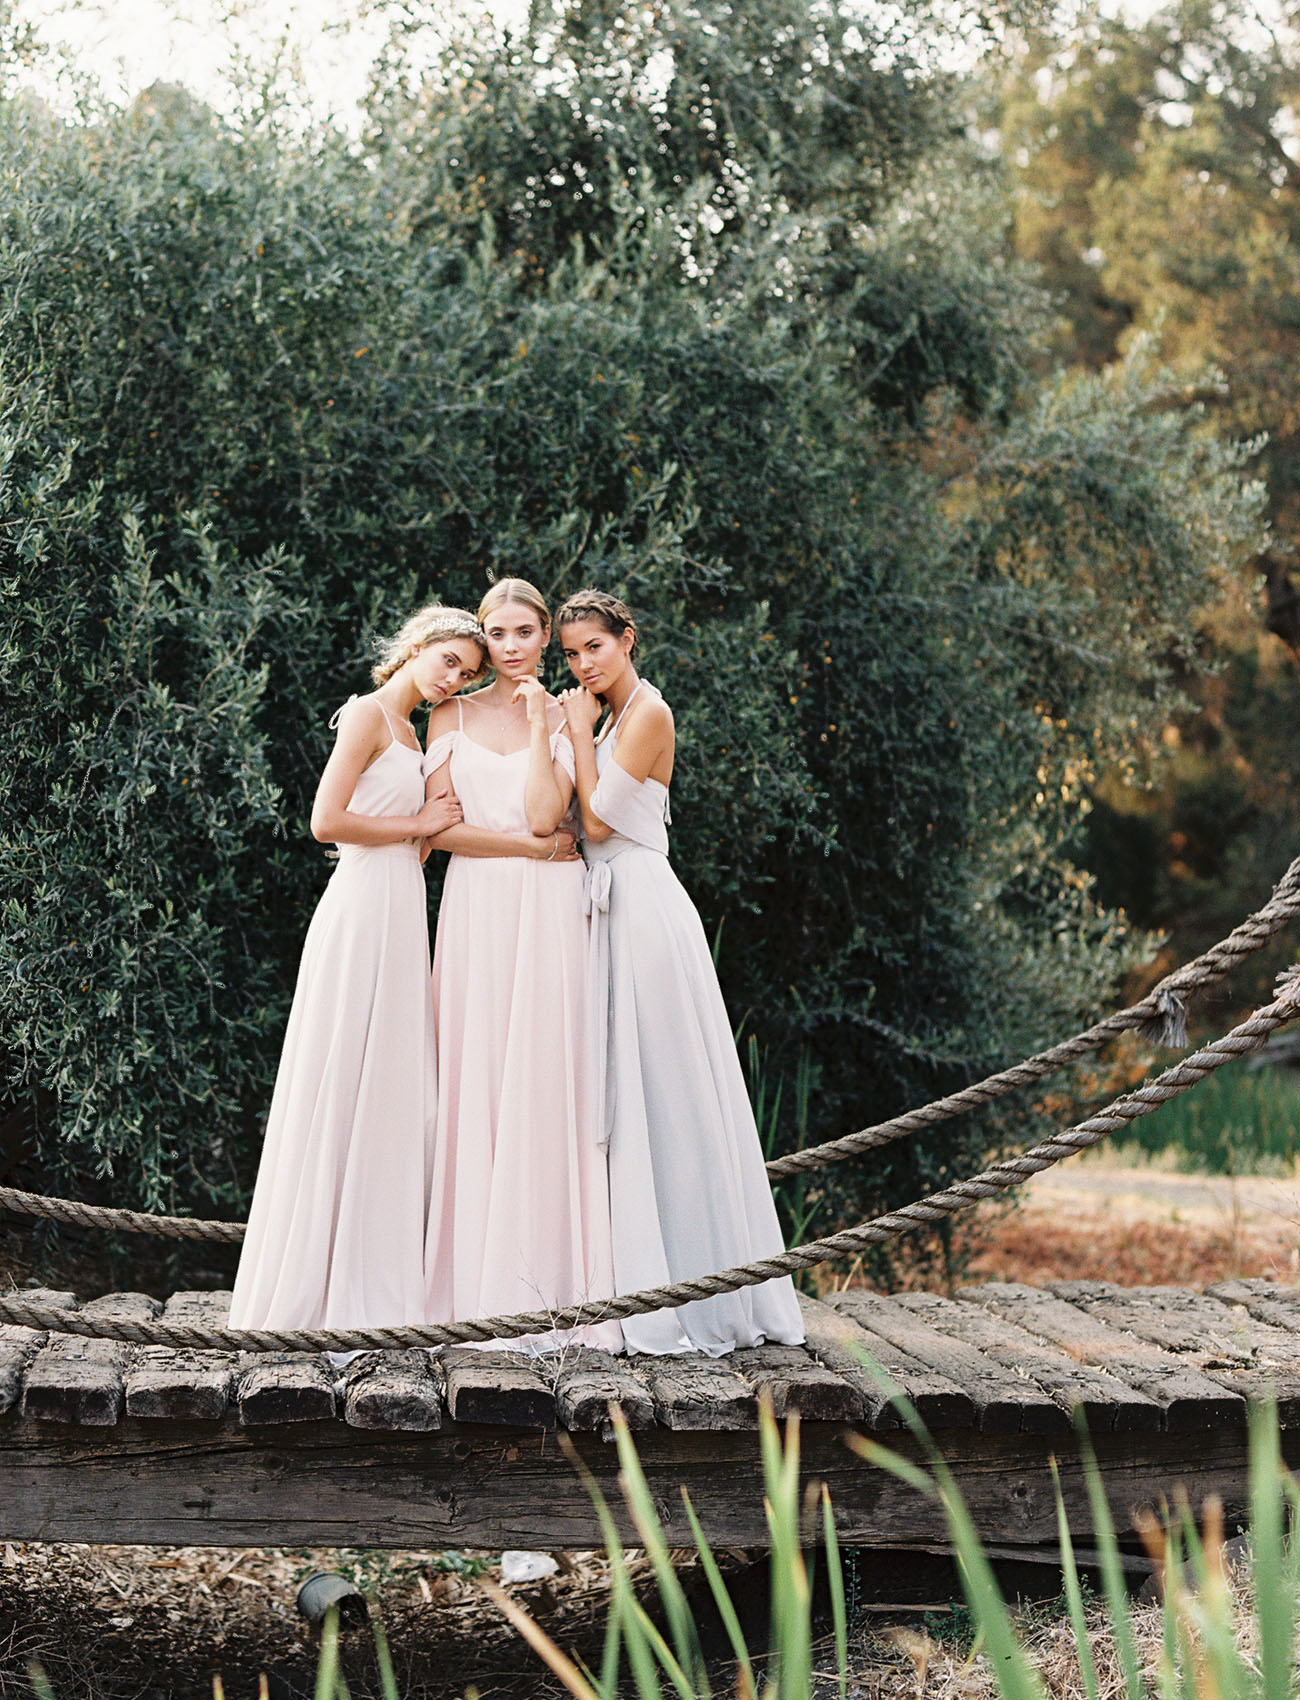 The new romantic bridesmaid dresses by joanna august green joanna august ombrellifo Images